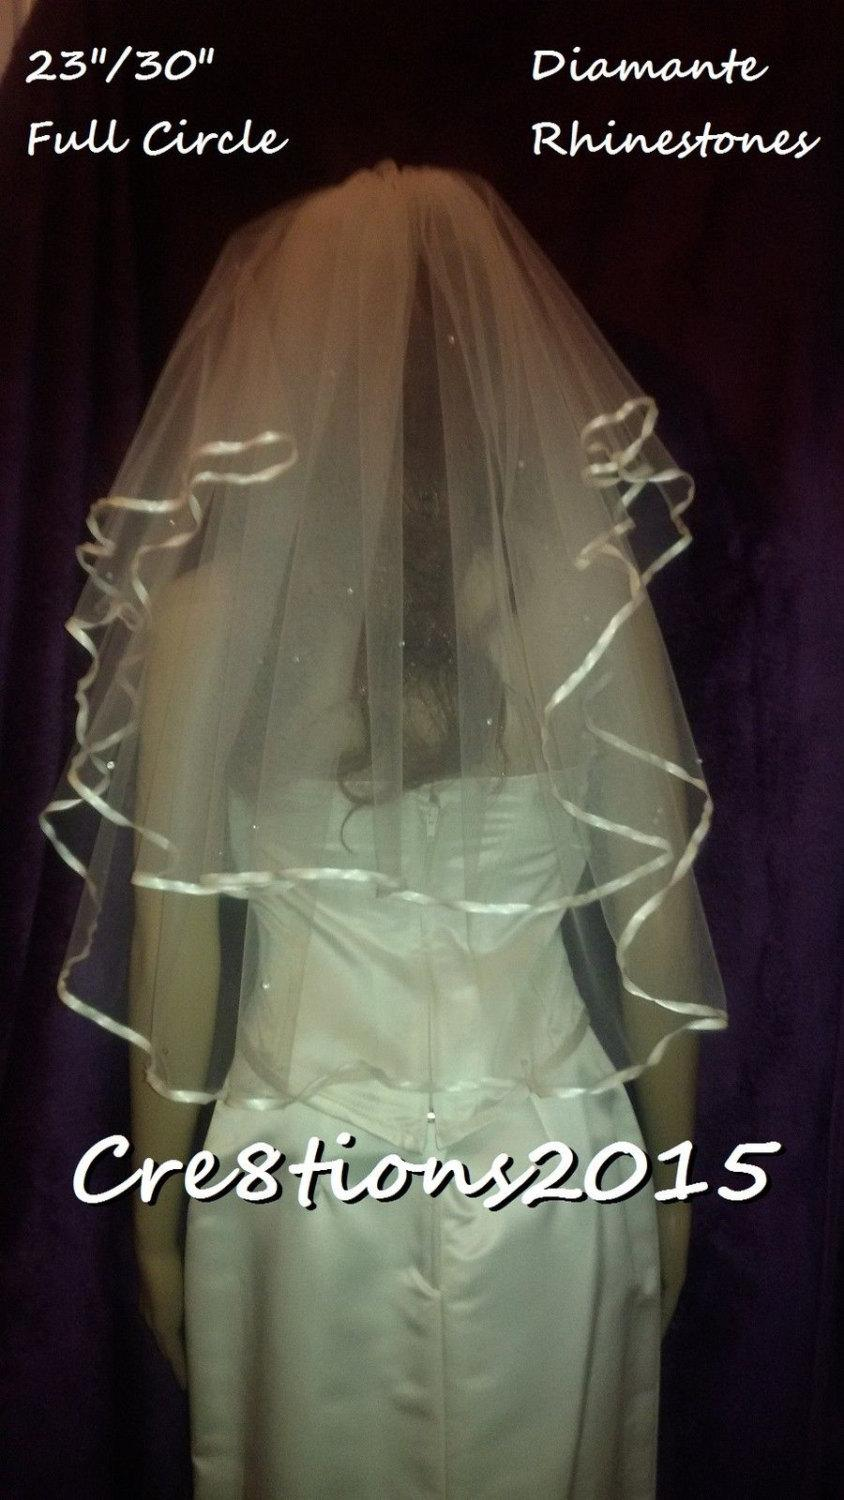 Mariage - Ivory wedding veil Satin edged with Diamante rhinestones 23 and 30 inch Elbow length full circle style veil. FREE UK POSTAGE